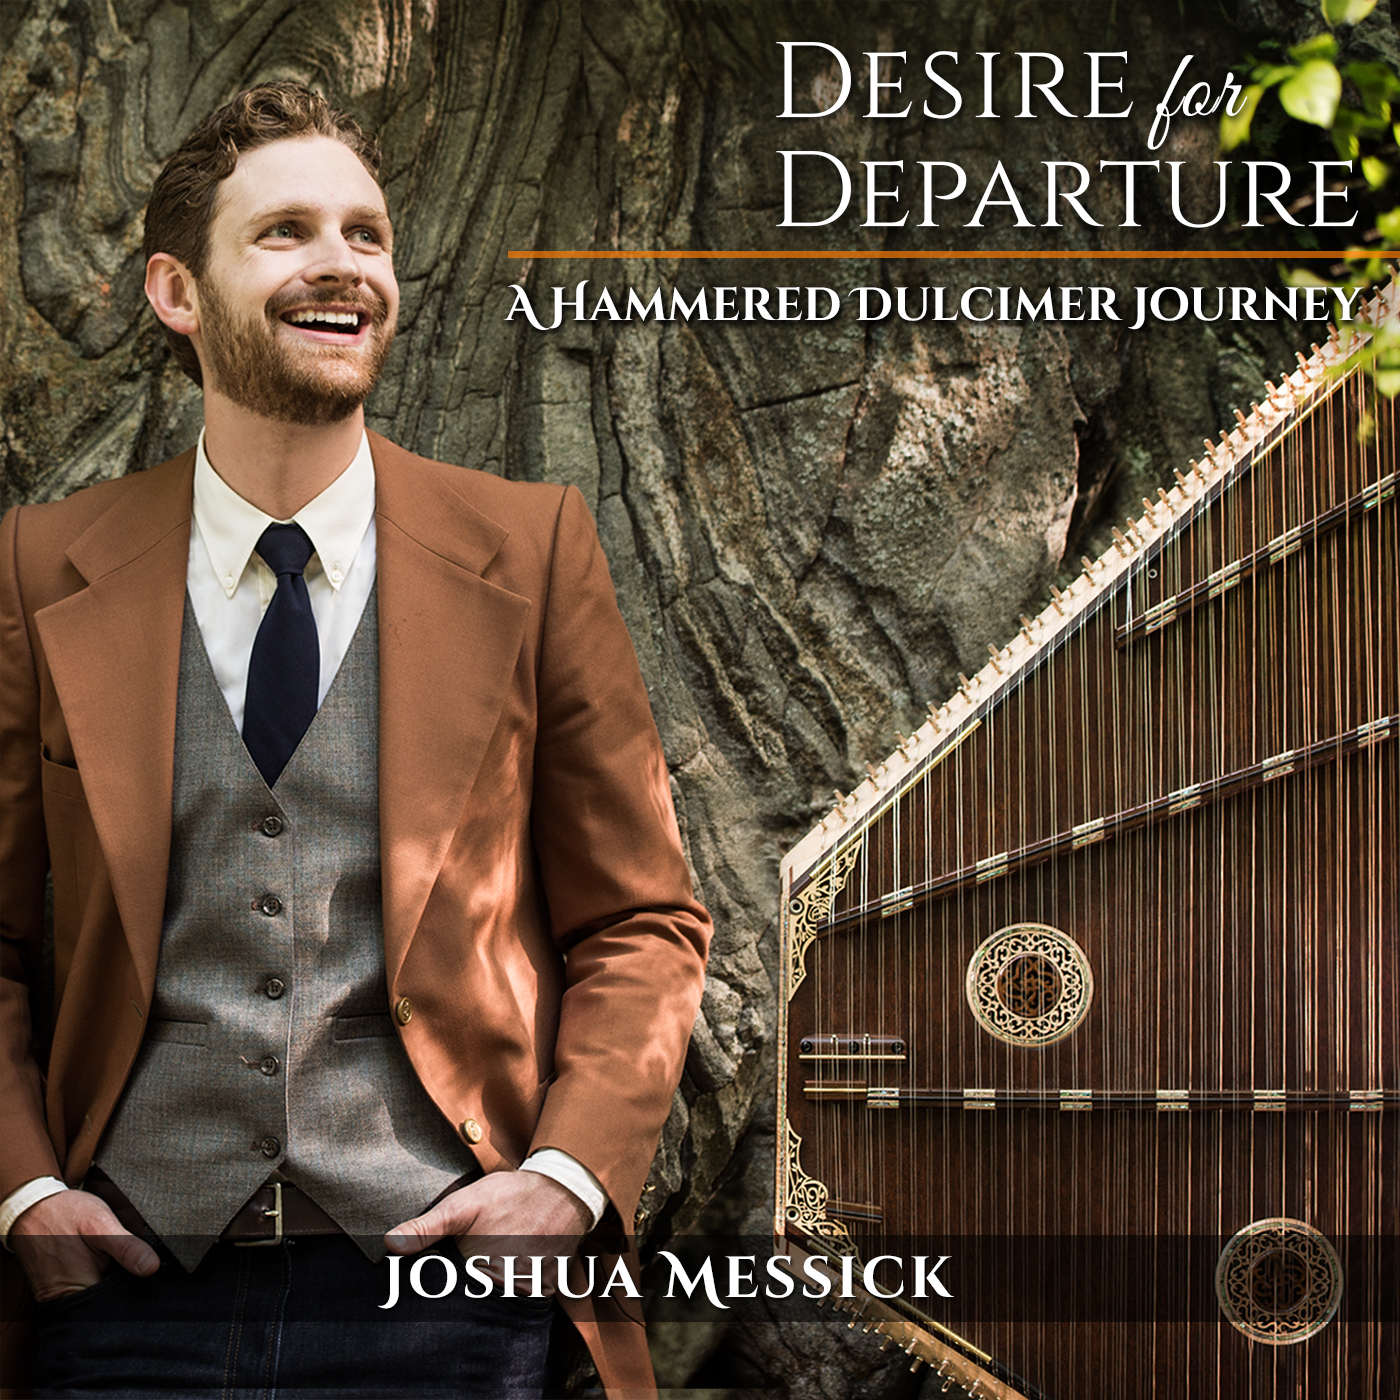 Desire for Departure - A Hammered Dulcimer Journey - Joshua Messick